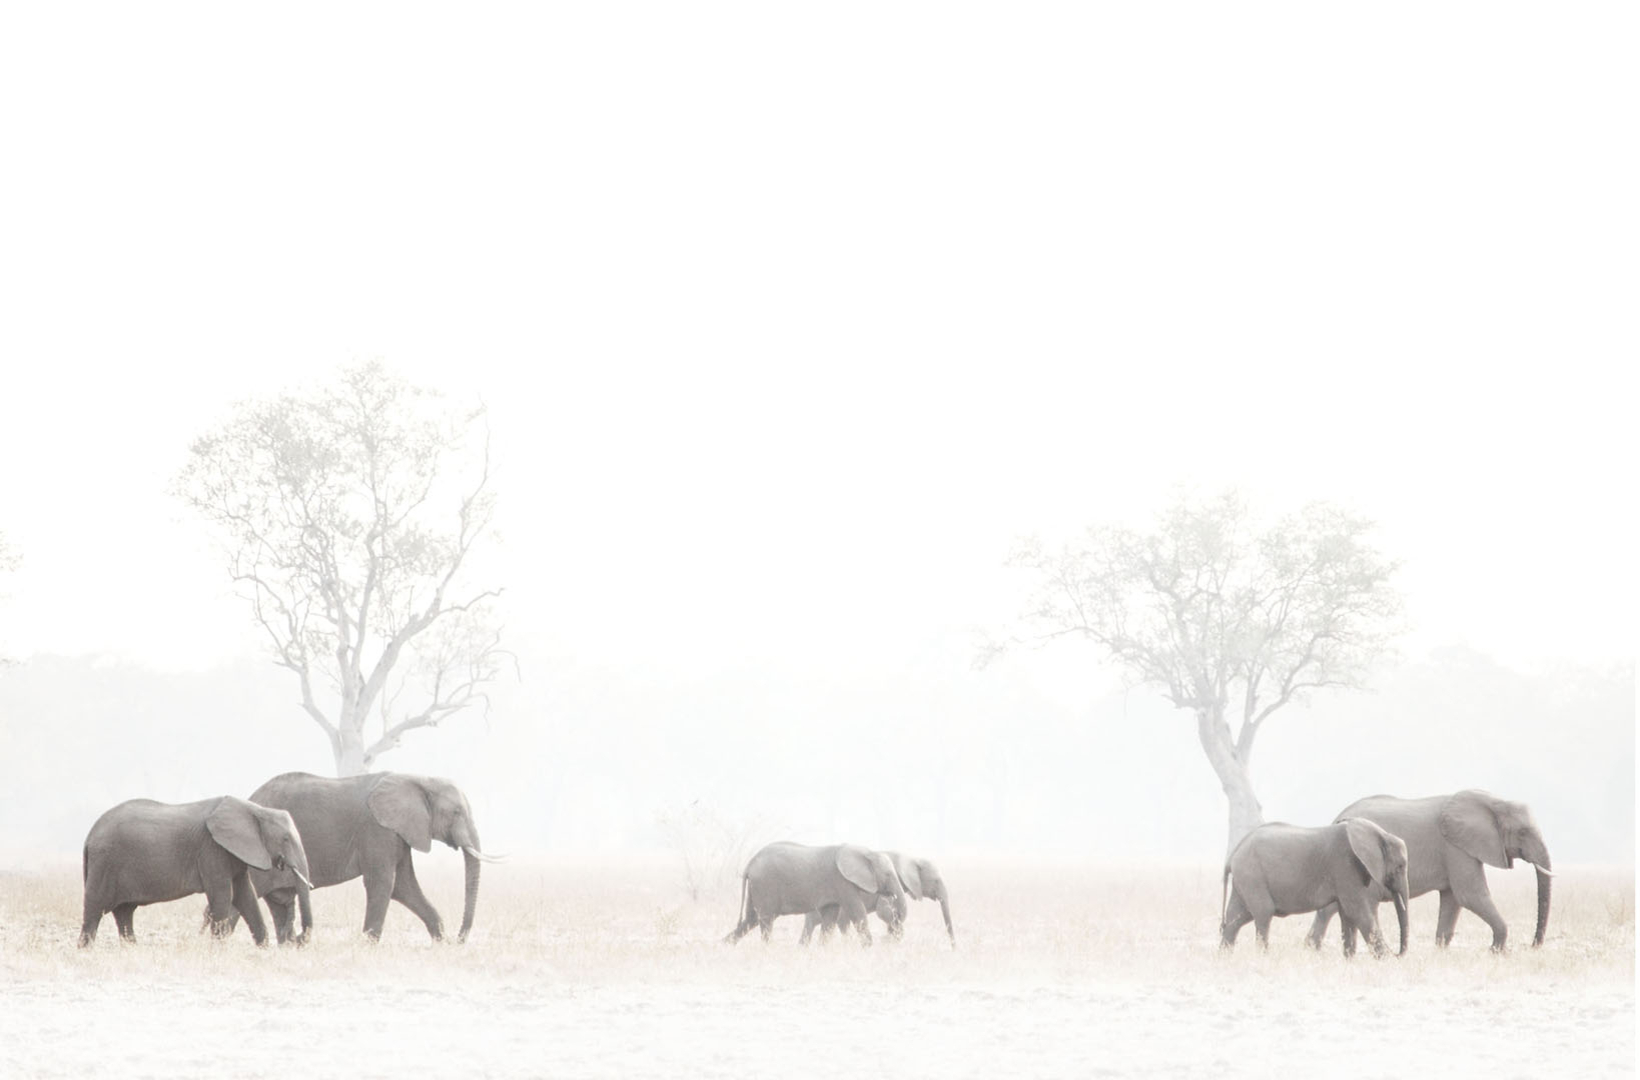 A matriarchal family of elephants glide across the plain of Africa savanna at dusk making their way to the river